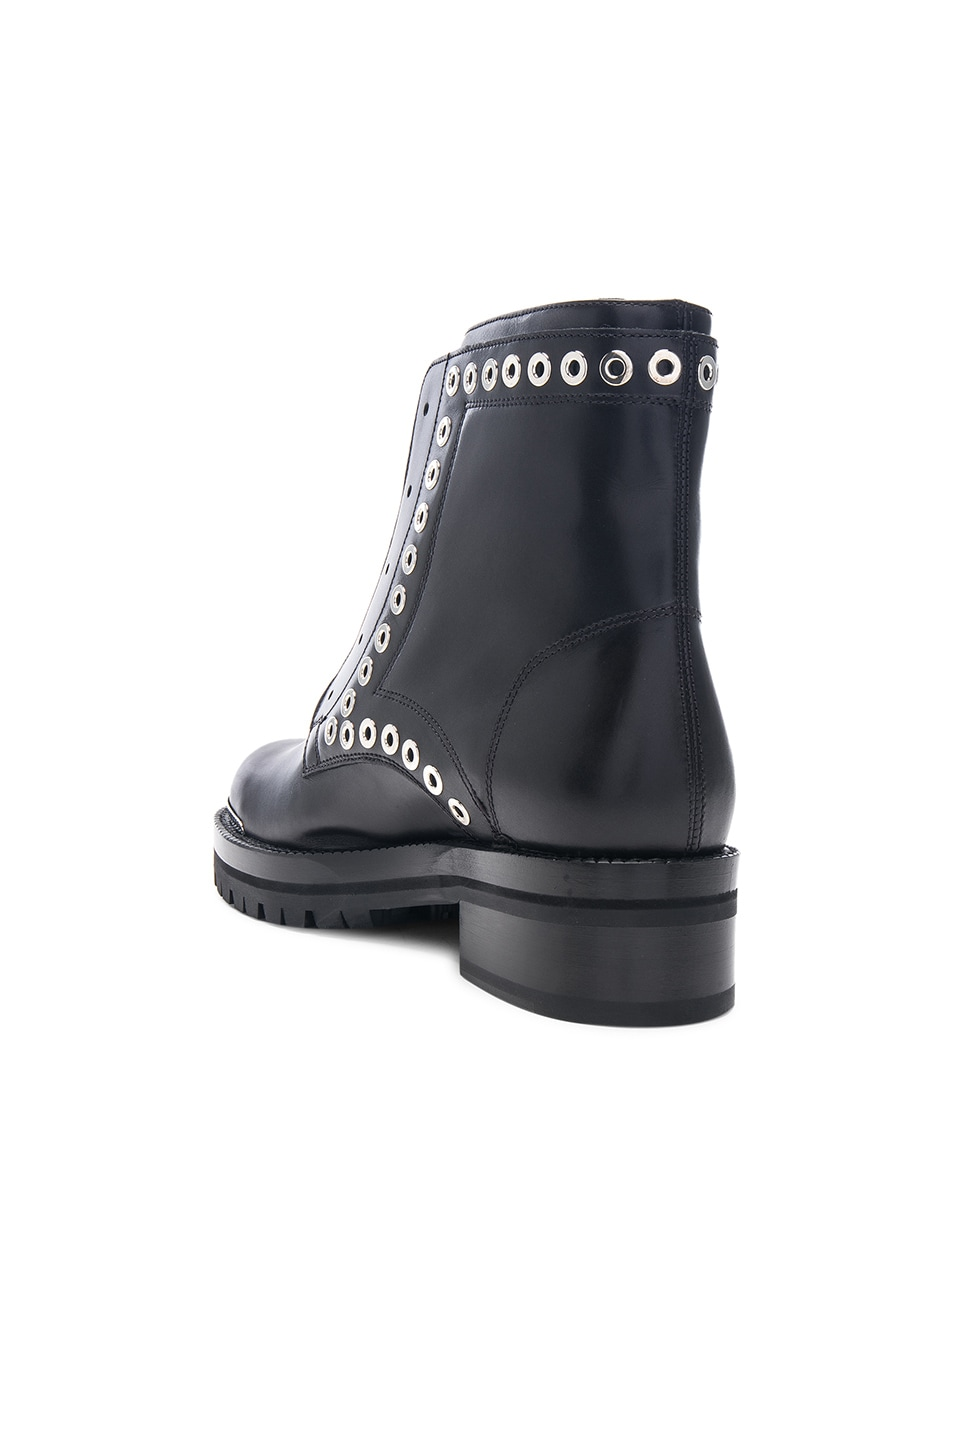 Image 3 of Alexander McQueen Eyelet Zip Up Leather Boots in Black